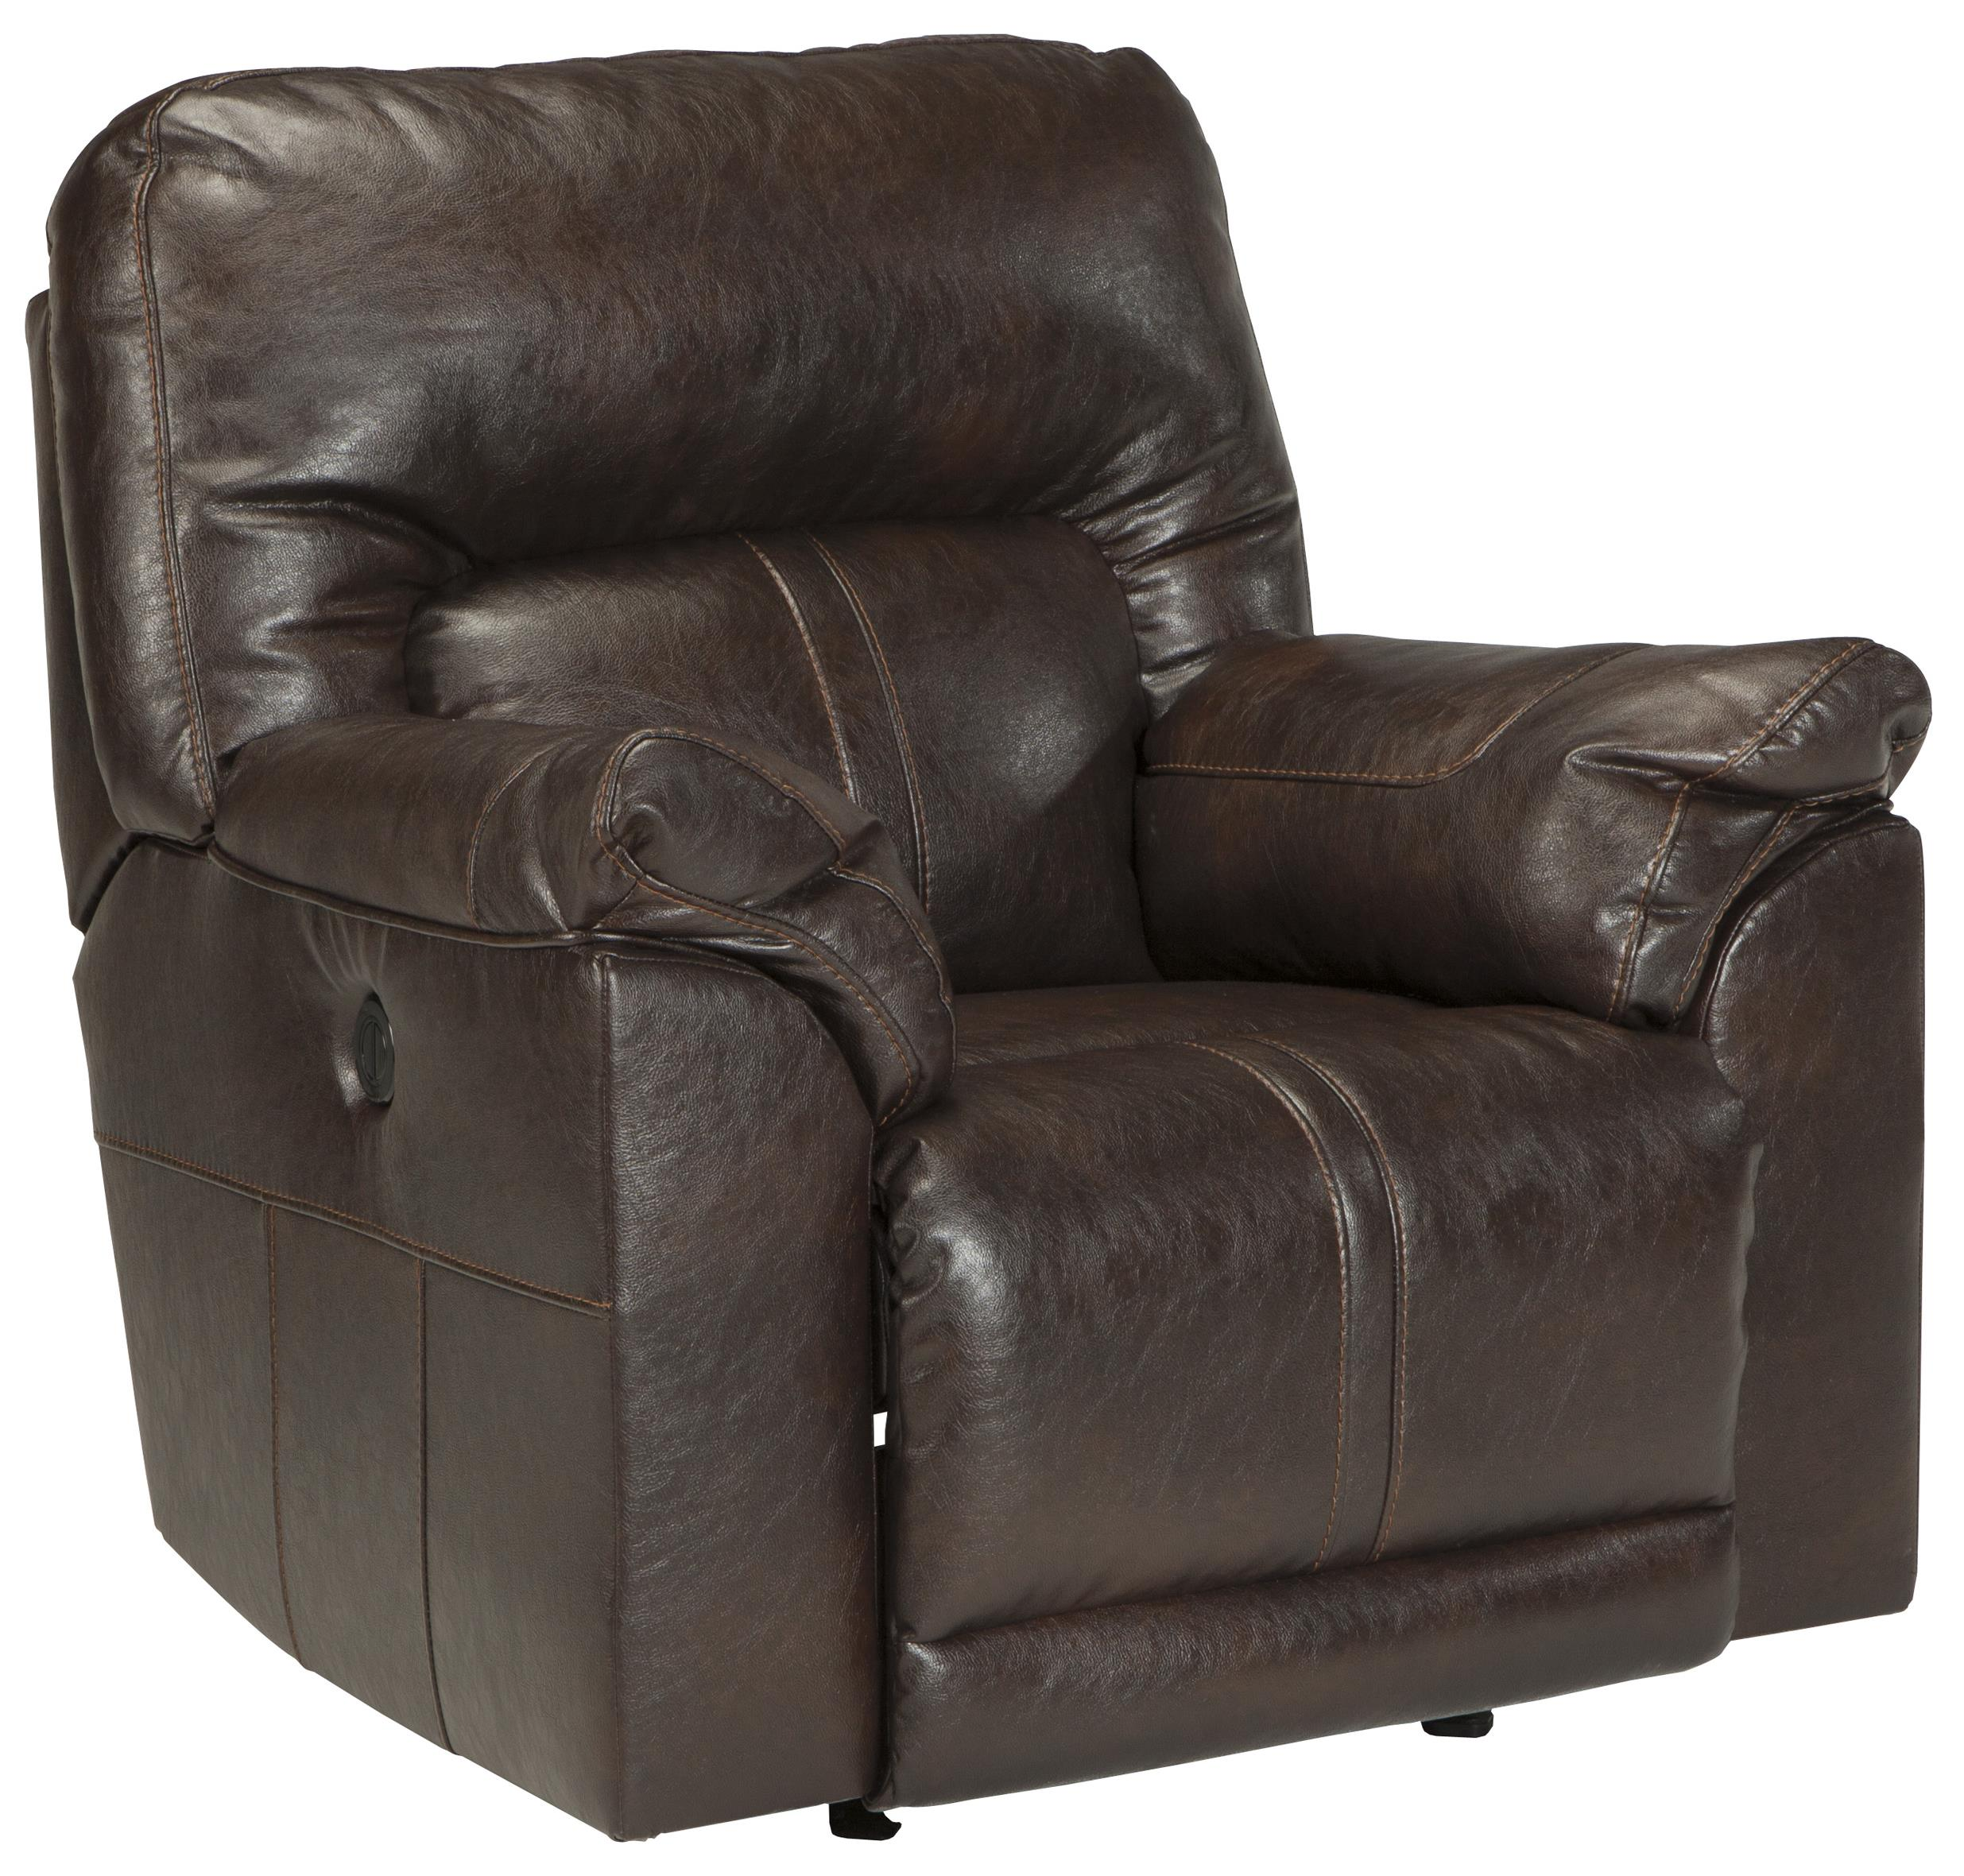 Benchcraft Barrettsville DuraBlend® Power Rocker Recliner - Item Number: 4730198